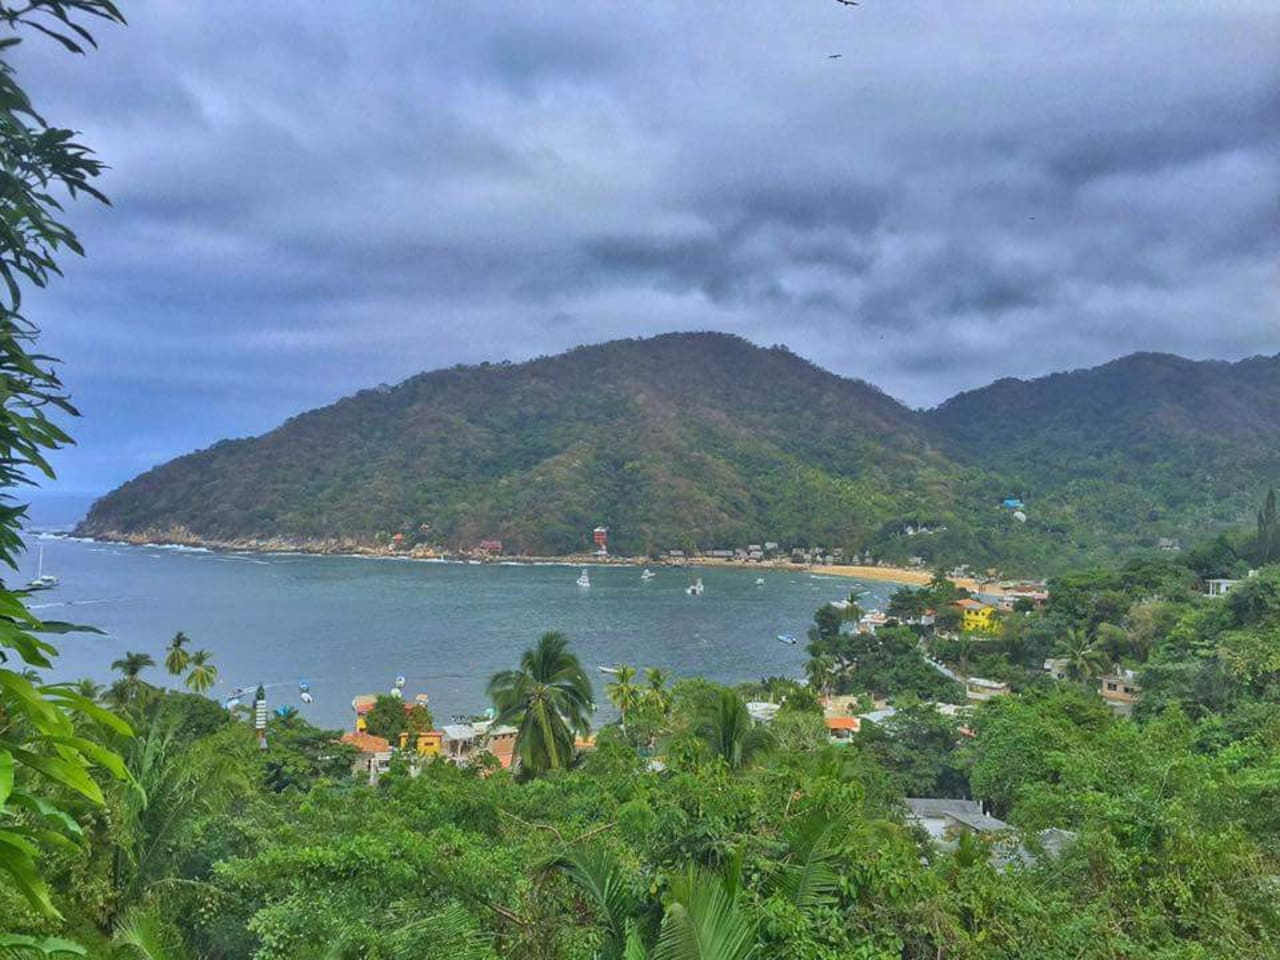 view from upper rooftop terrace/ bedroom of Yelapa Bay